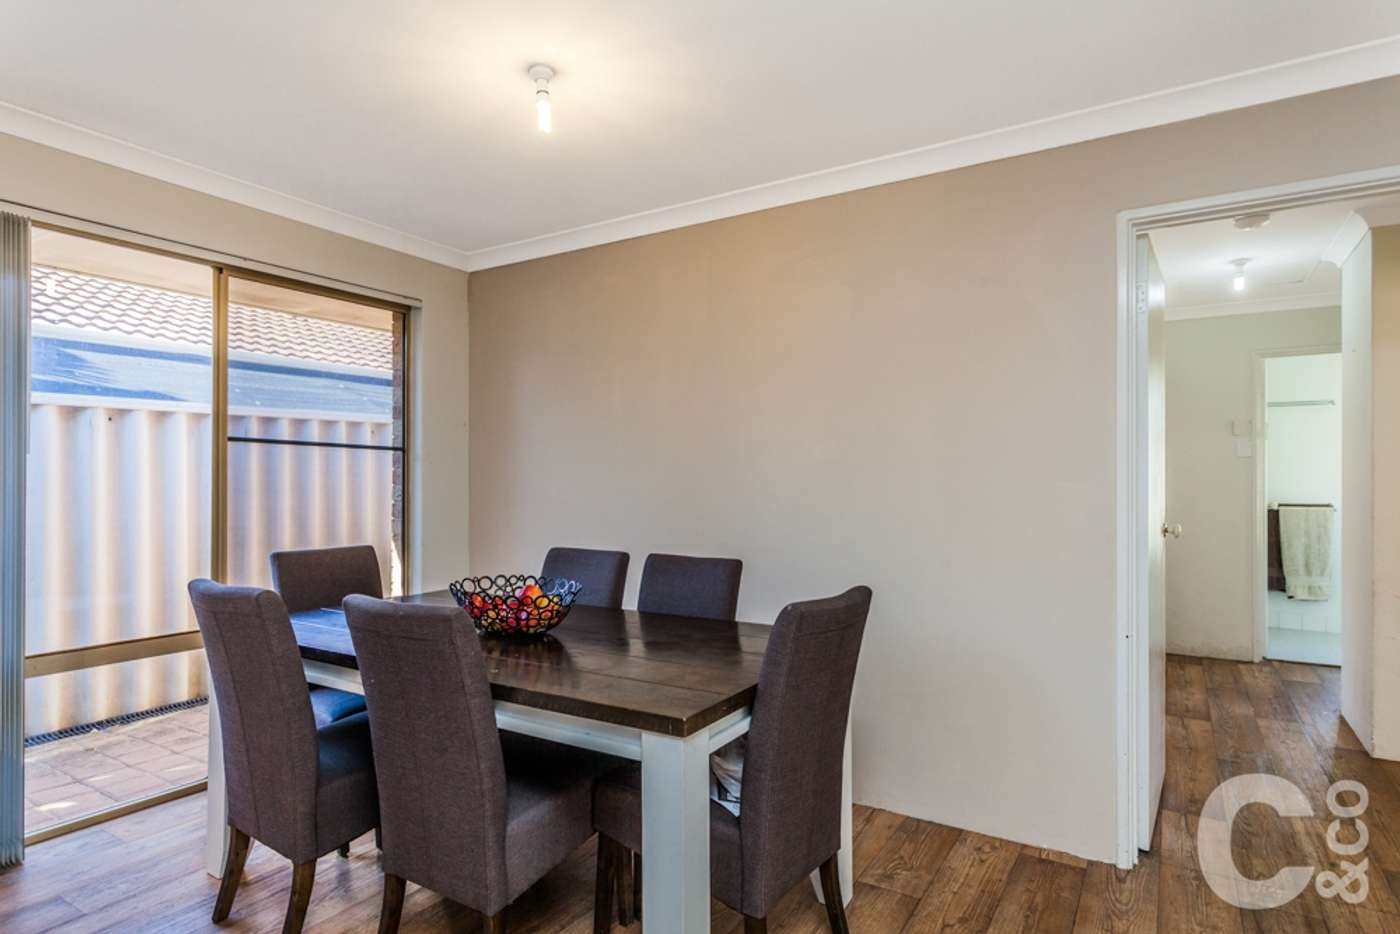 Sixth view of Homely house listing, 74 Perham Crescent, Leda WA 6170